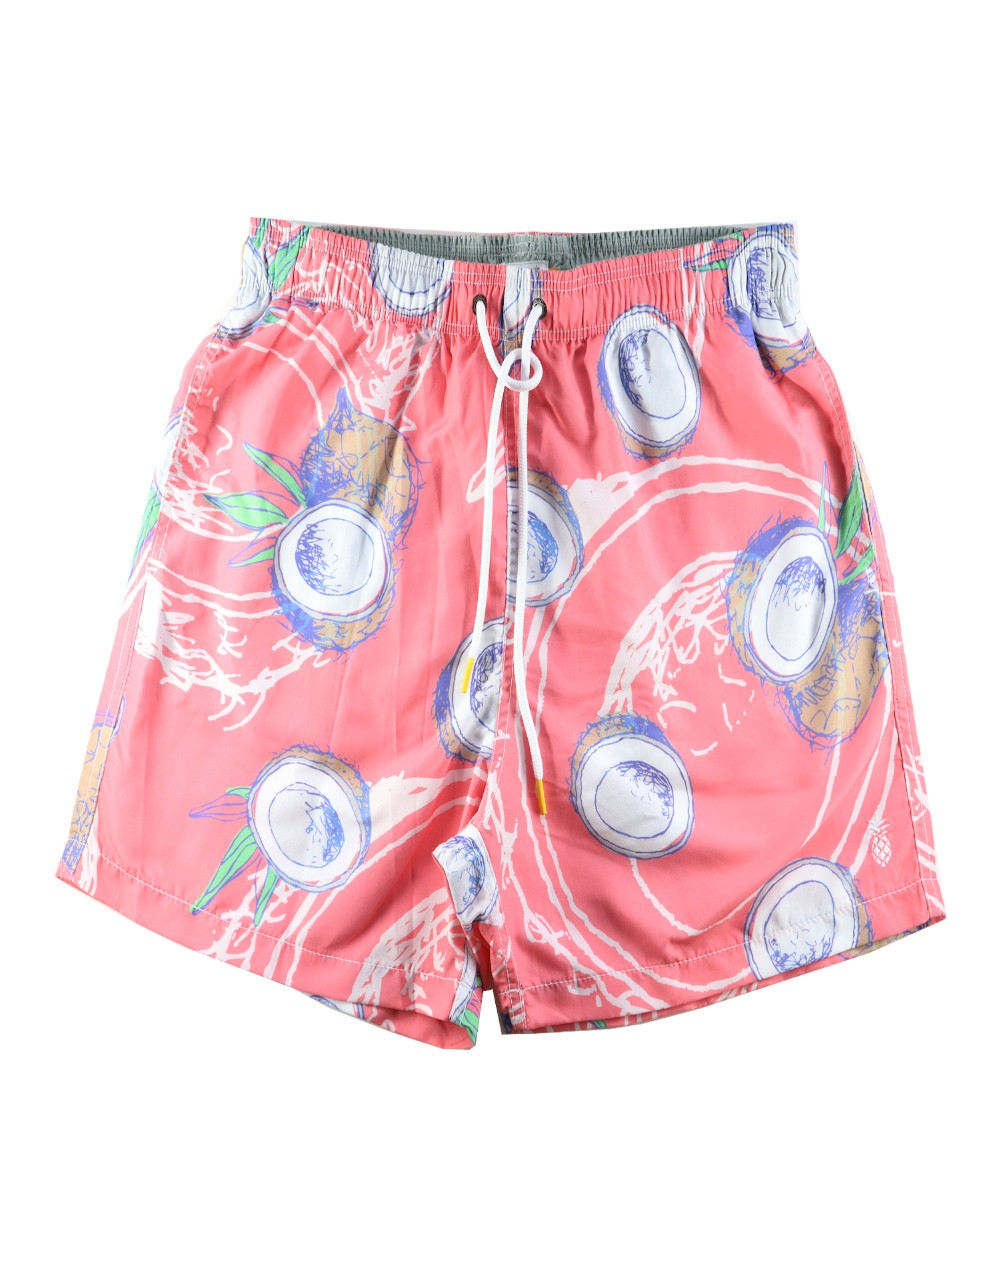 SHORTS COCOS PINEAPPLE